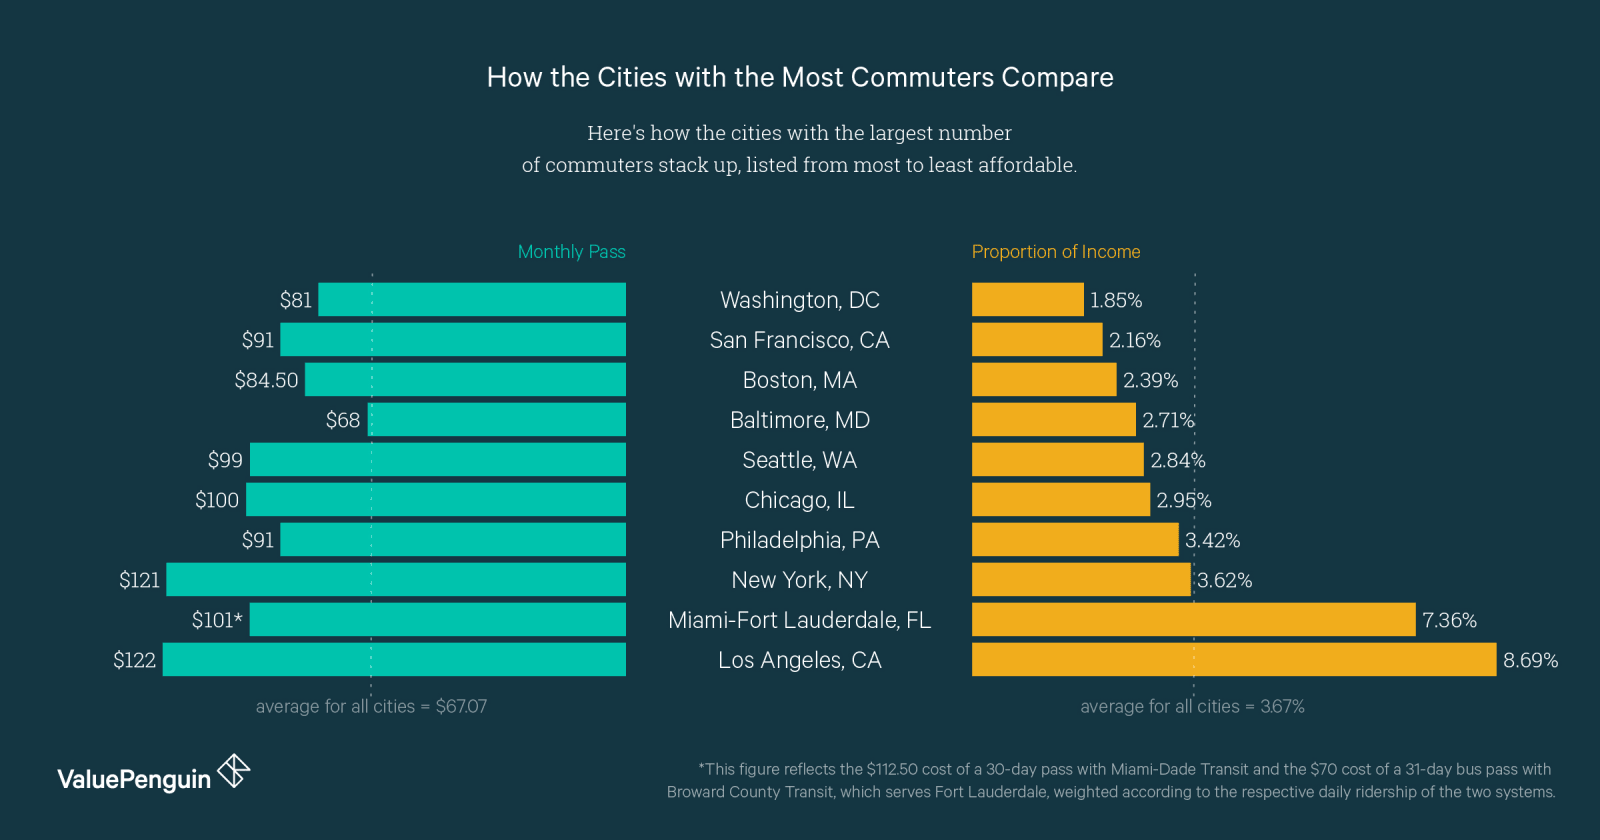 How the Cities with the Most Commuters Compare